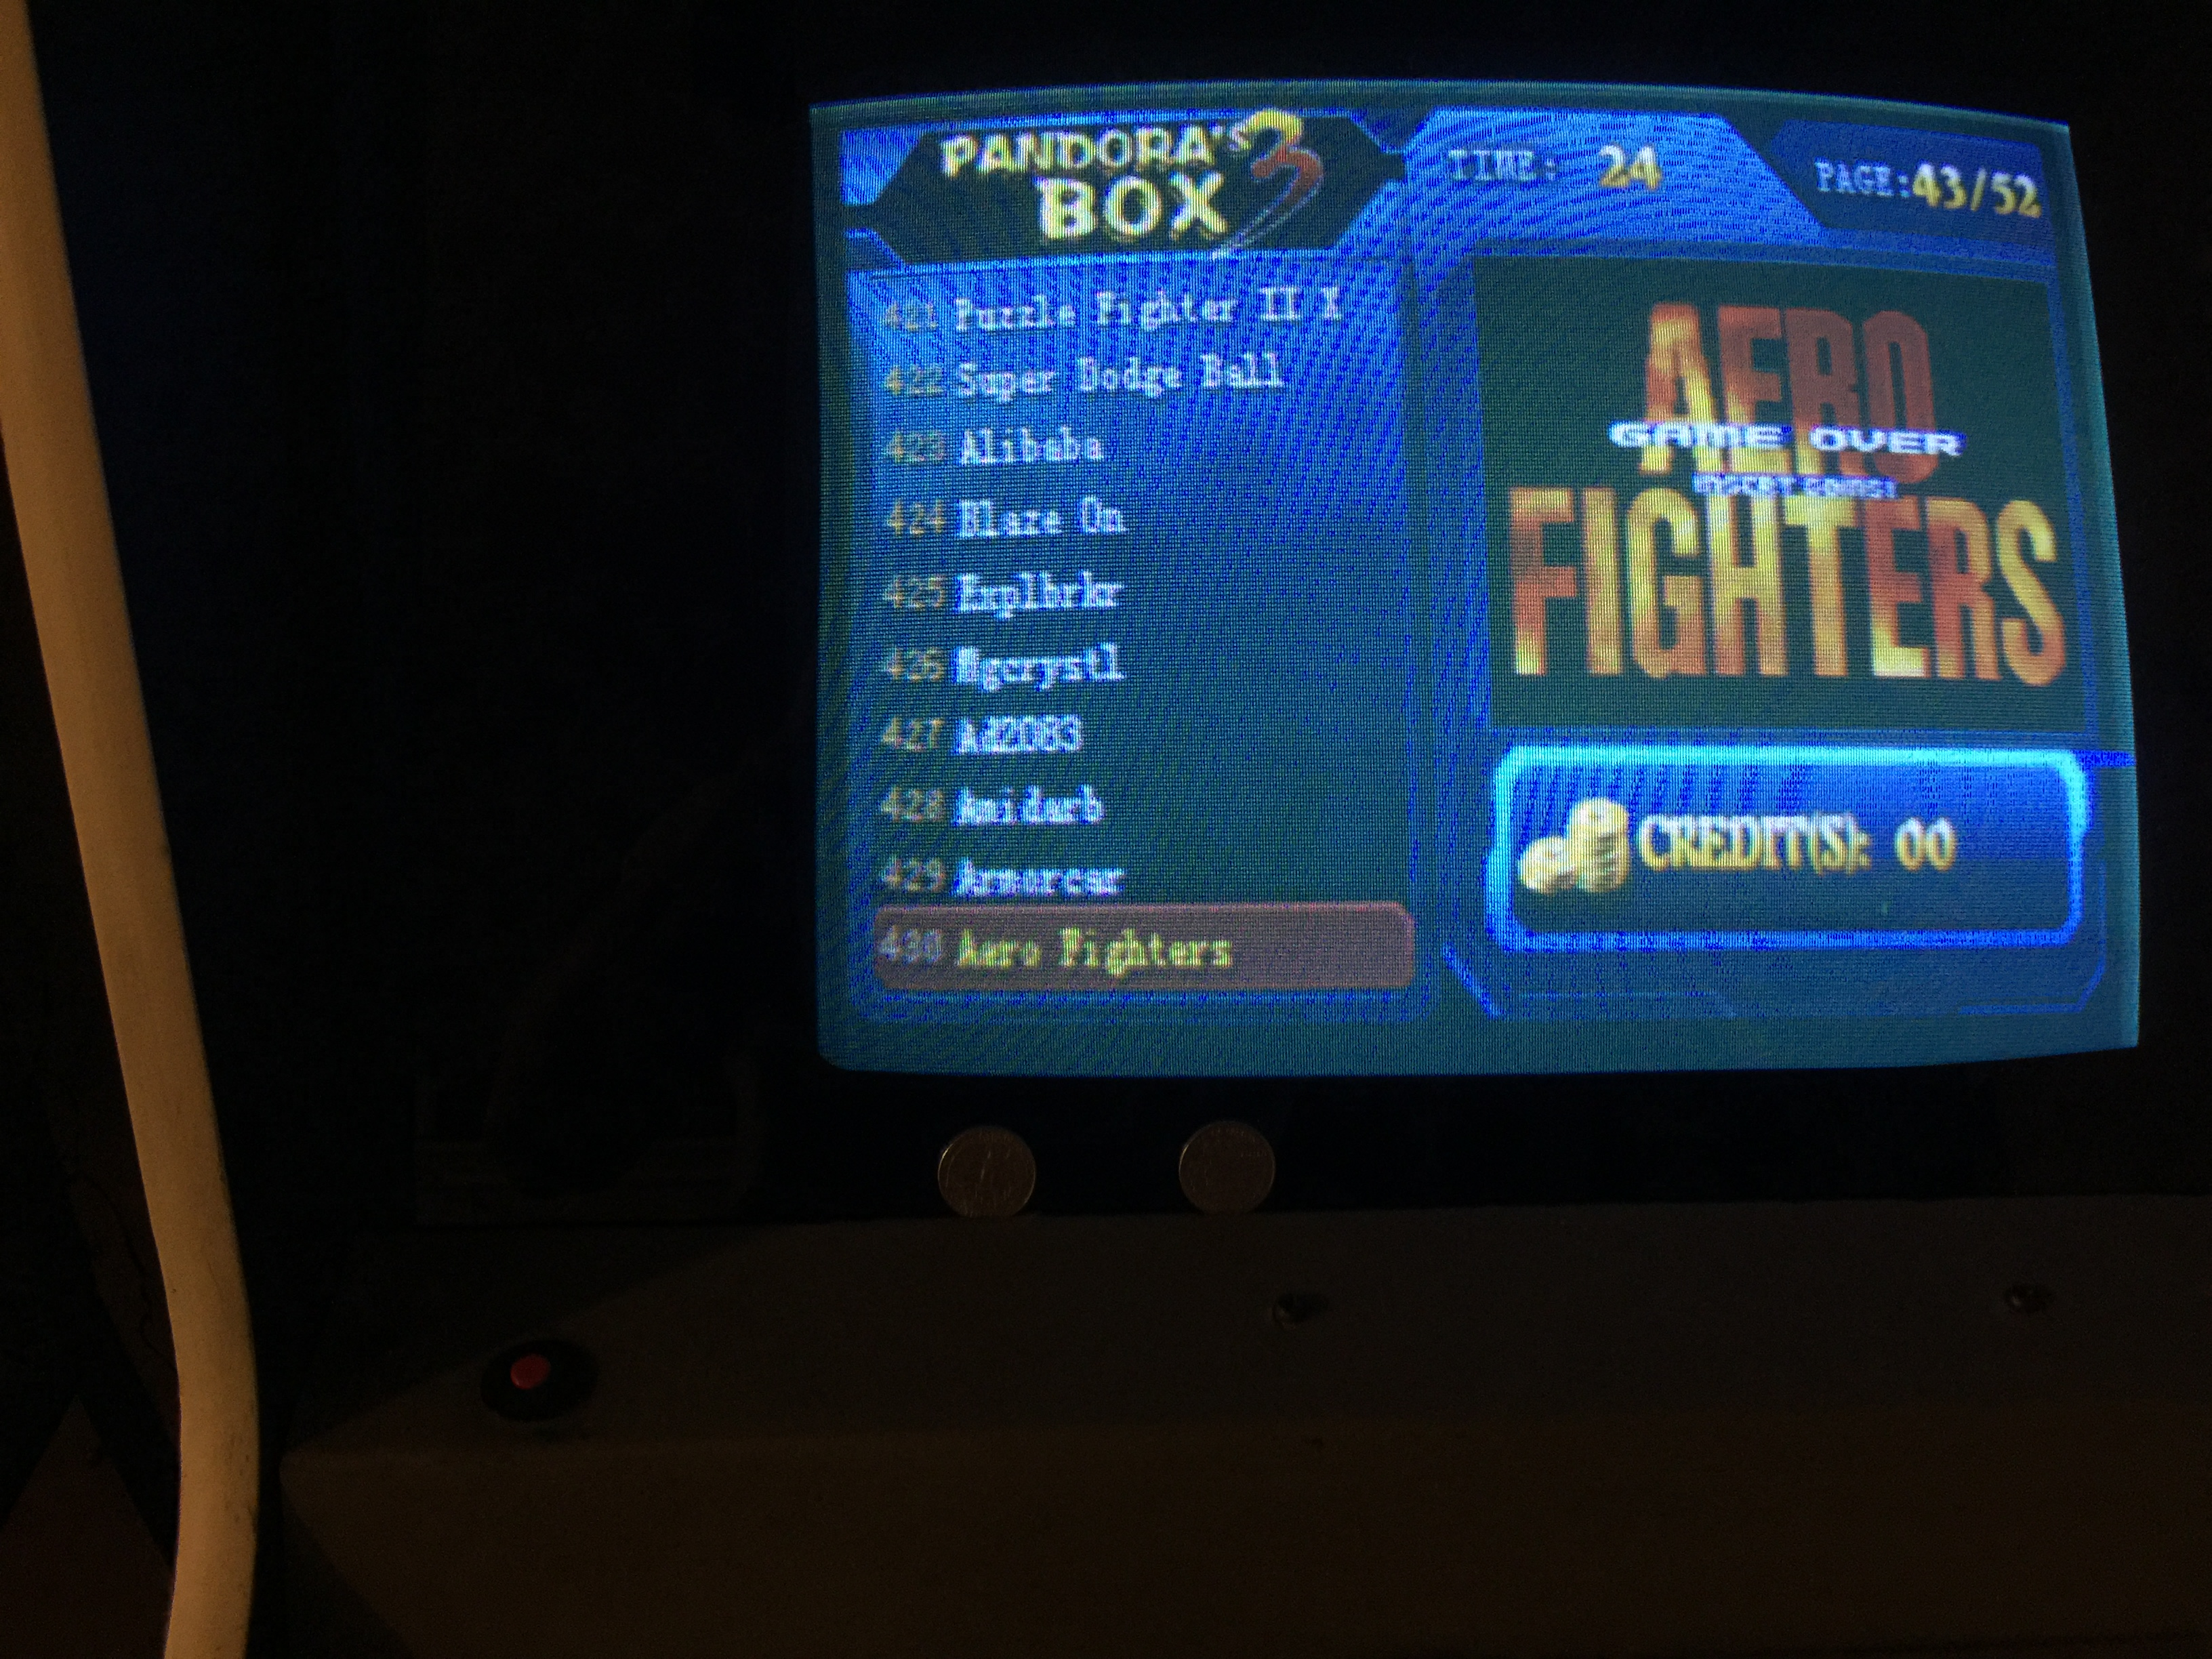 Aero Fighters 180,200 points